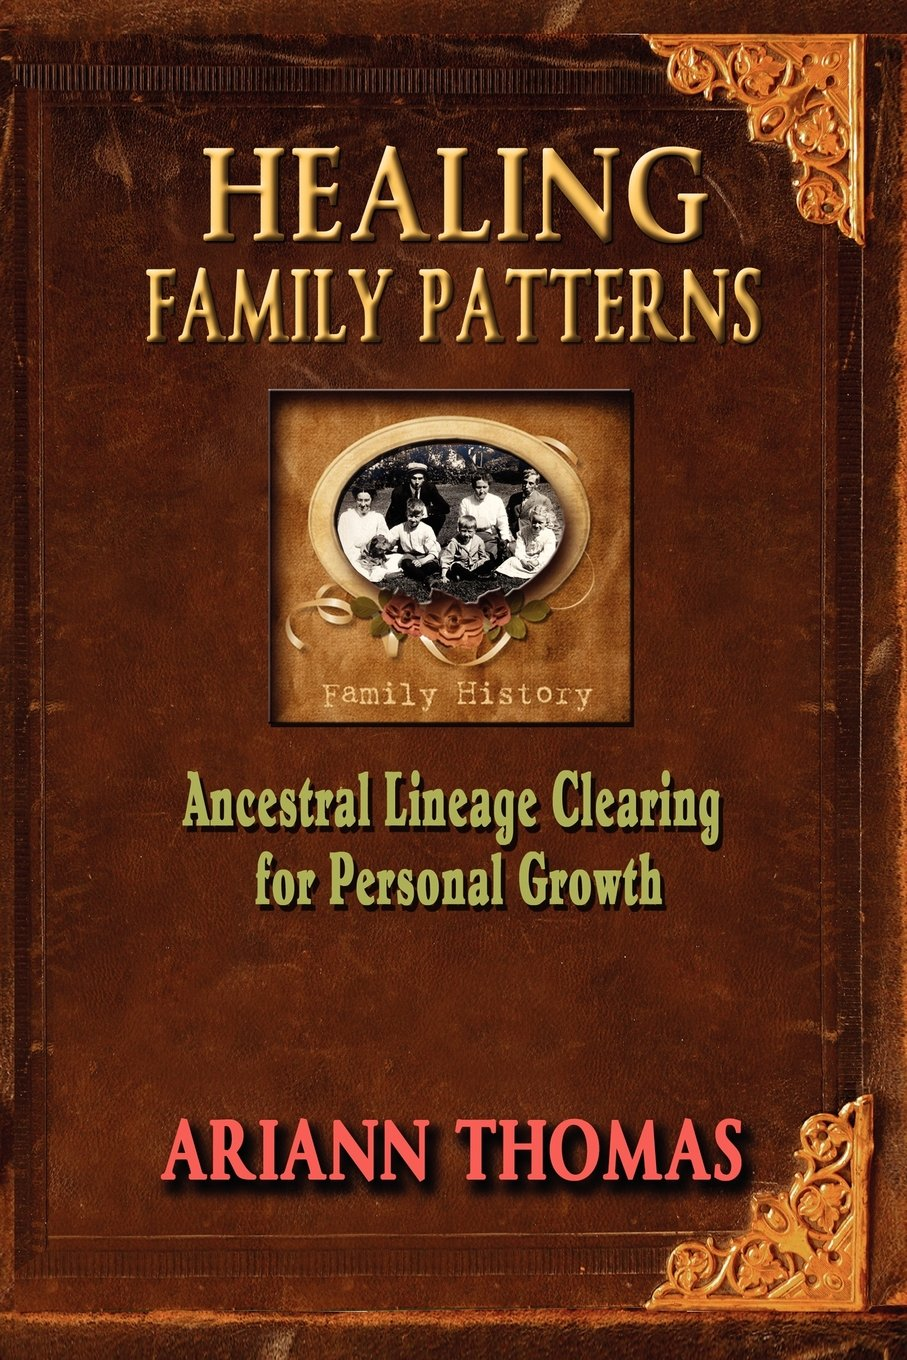 Healing Family Patterns: Ancestral Lineage Clearing for